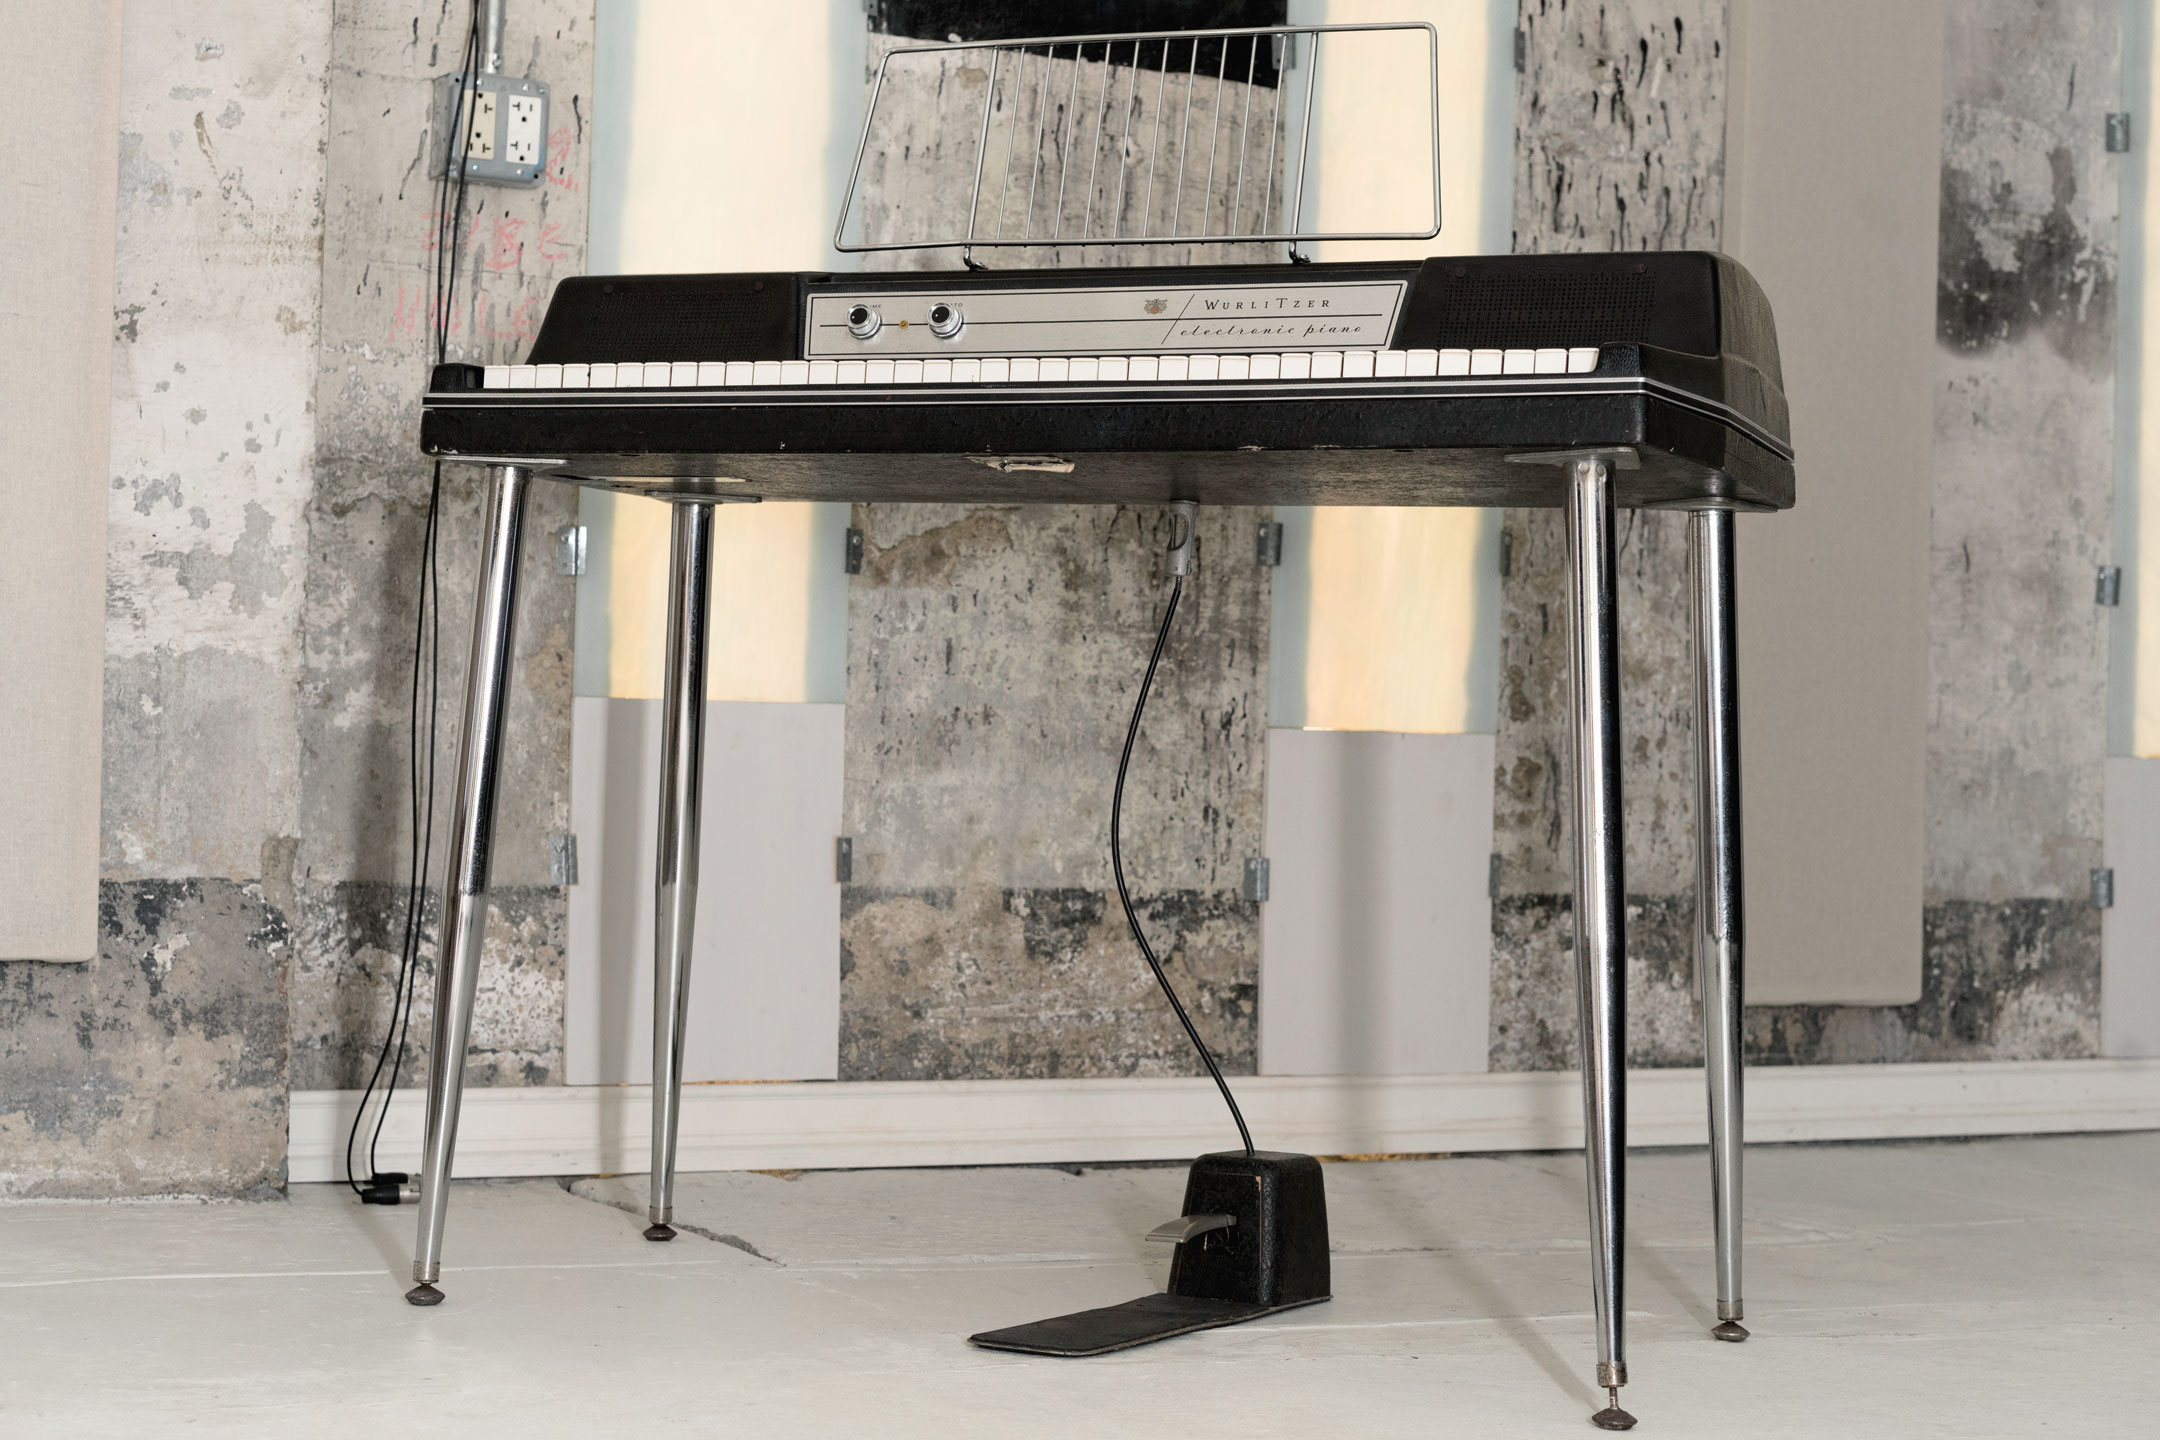 Wurlitzer 200a electronic piano with sustain pedal